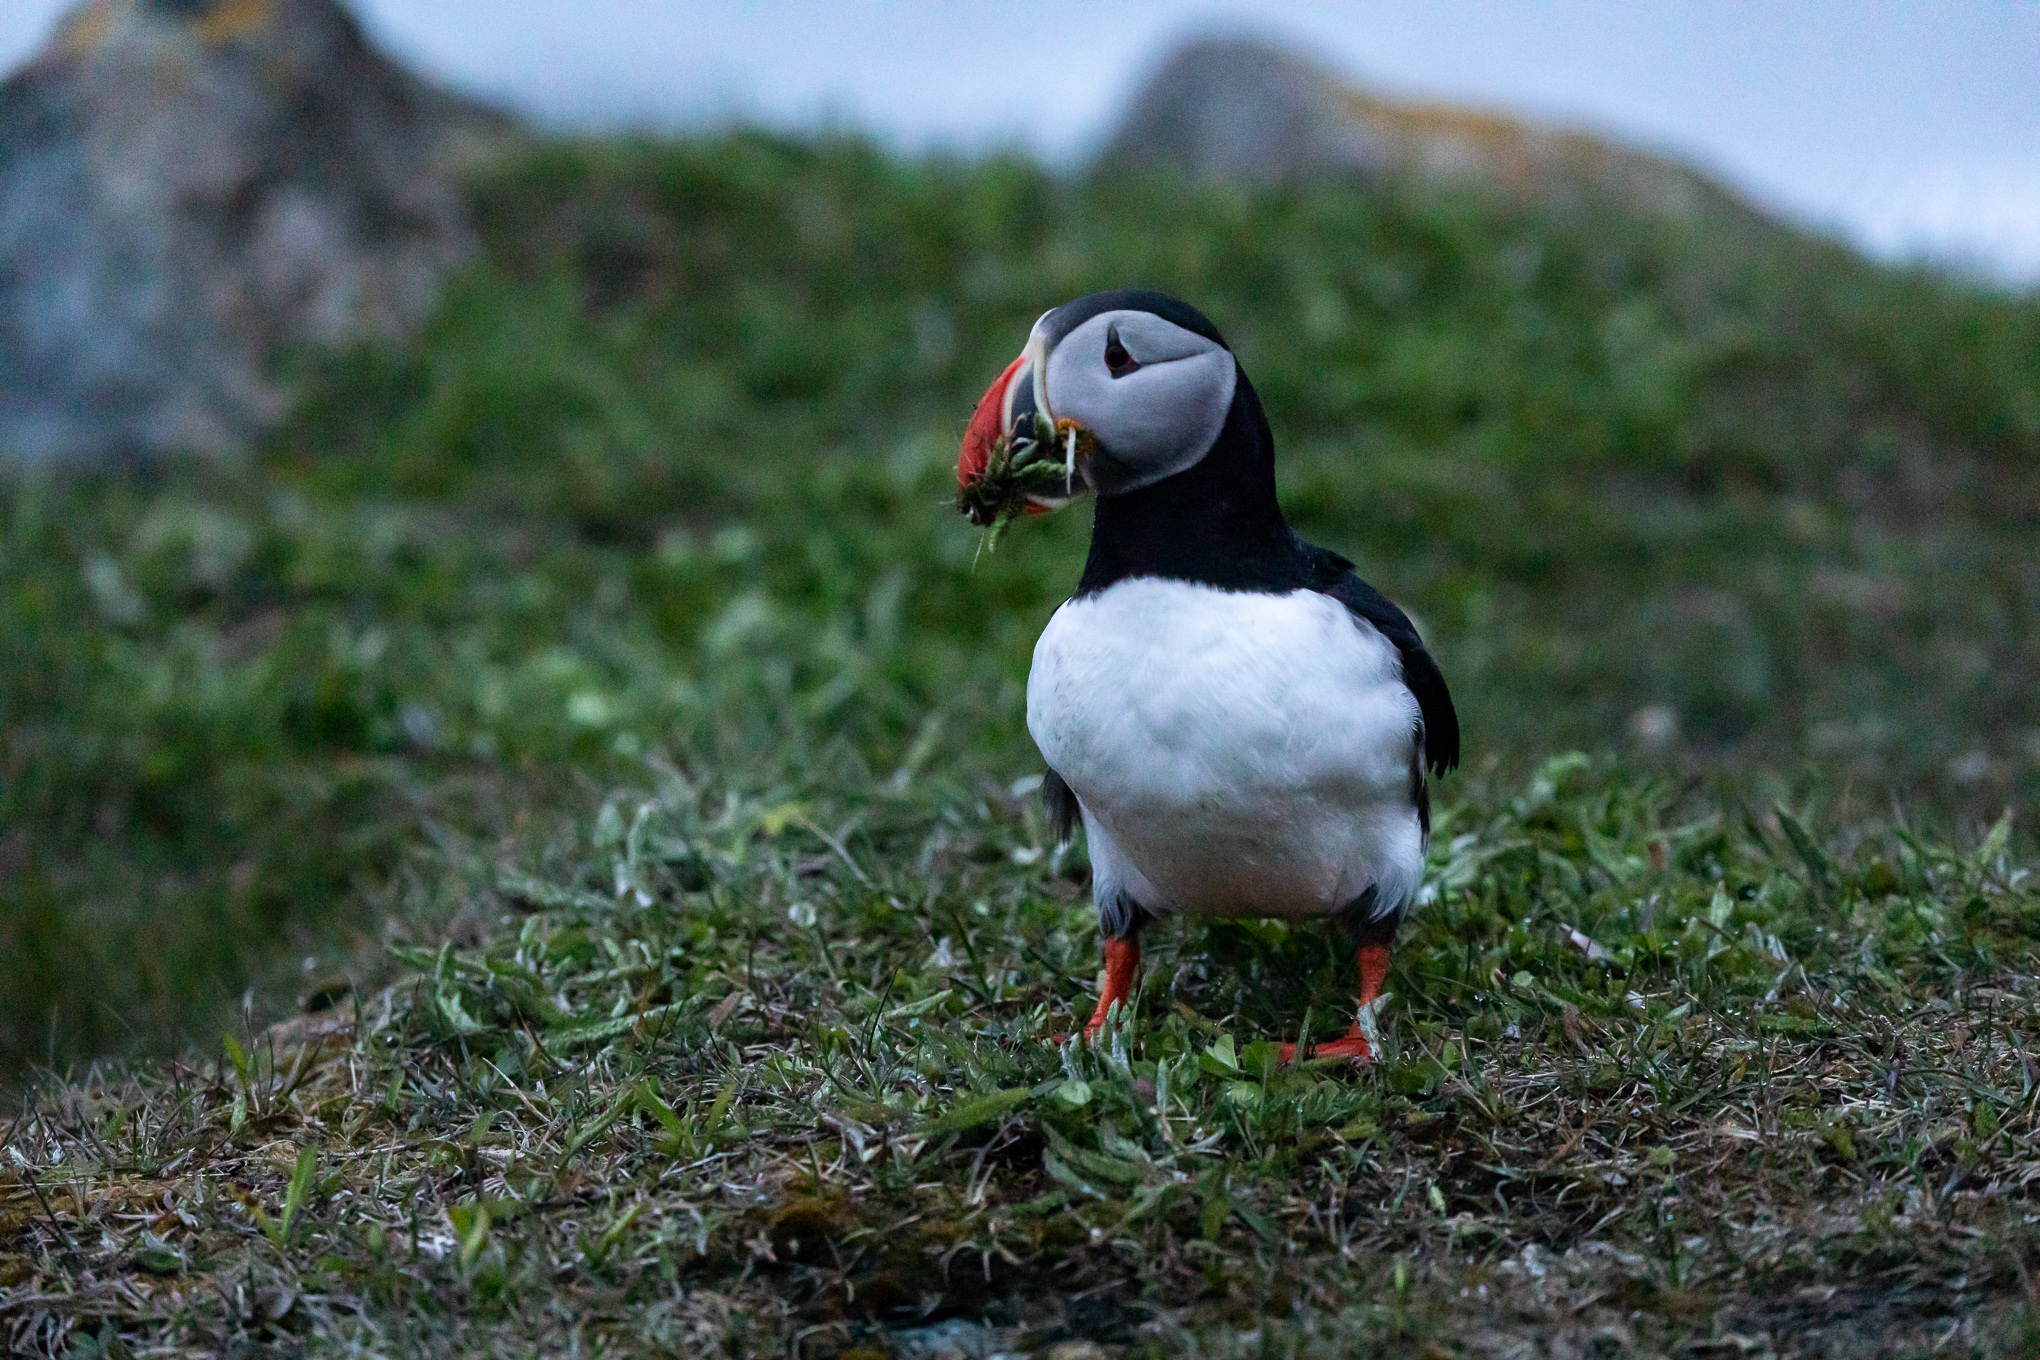 puffin-Elliston-Newfoundland-3126.jpg